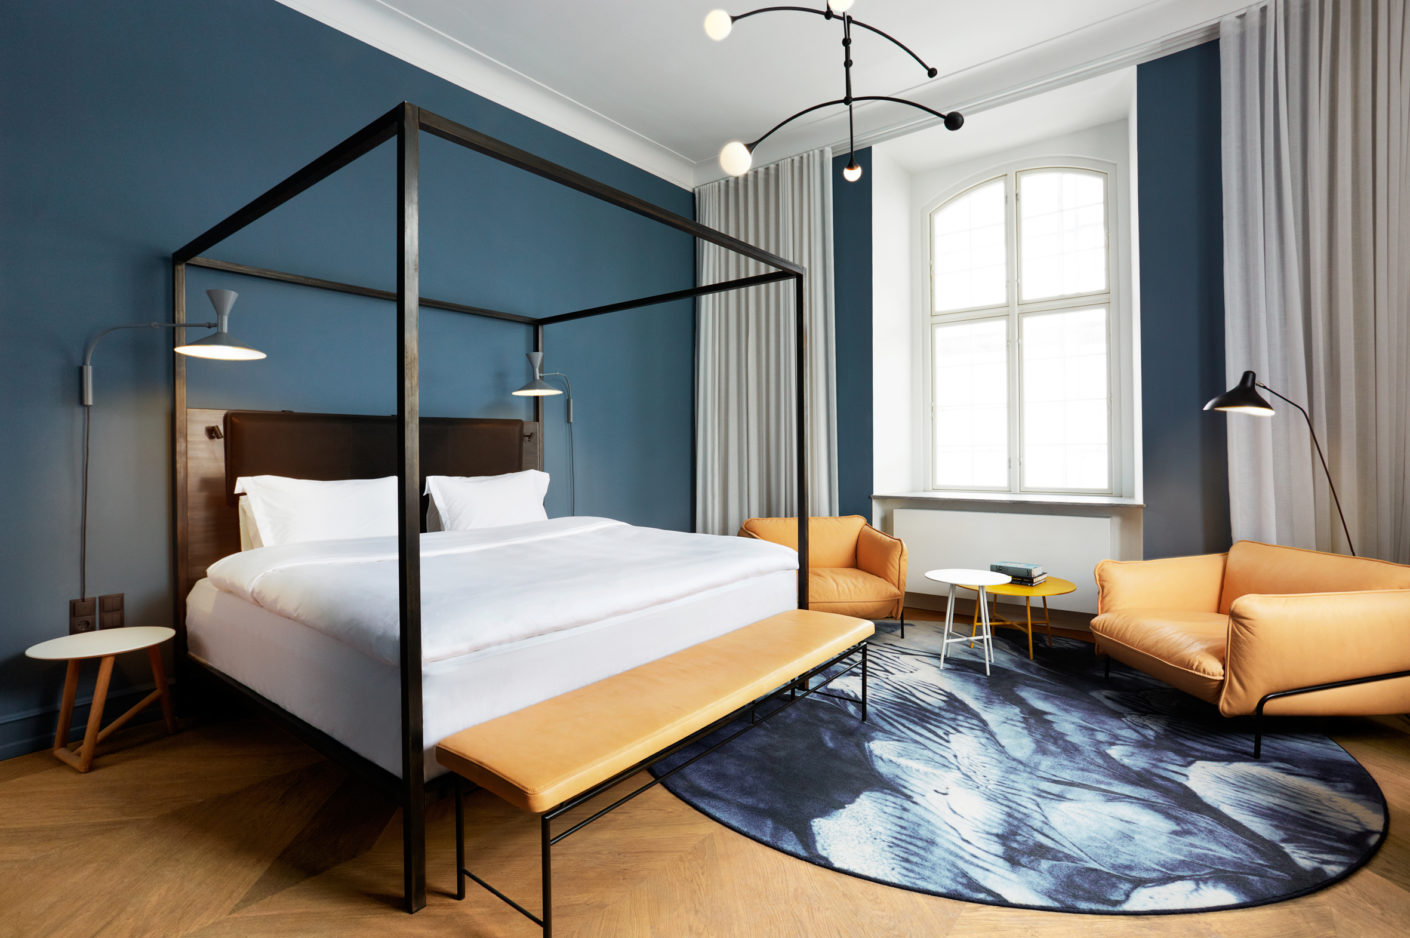 From September you can stay at the Copenhagen Nobis Hotel, housed in the former building of the Royal Danish Music Conservatory.